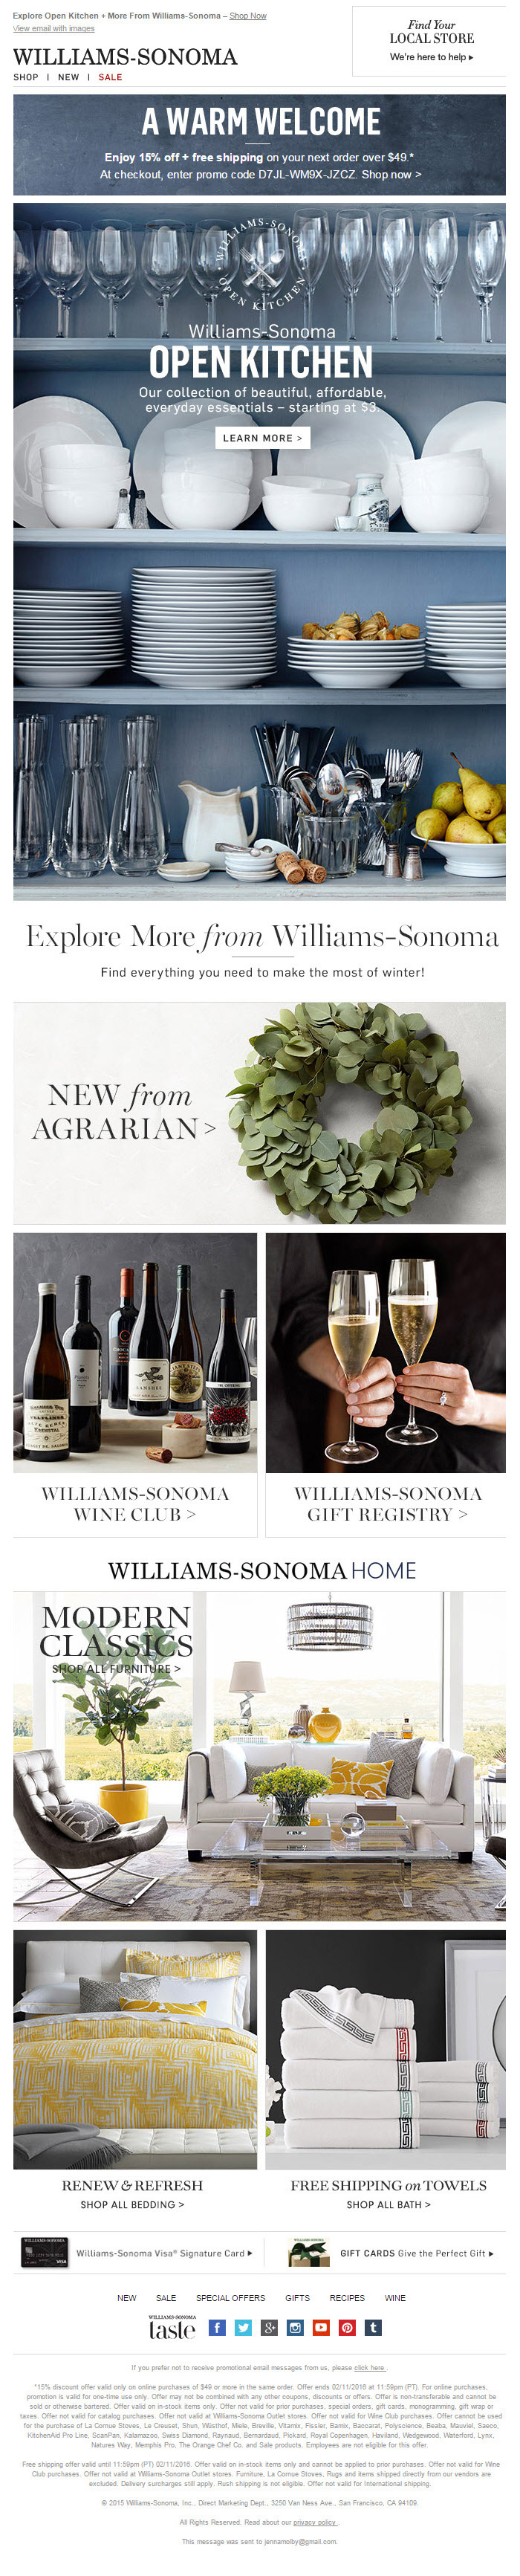 william-sonoma